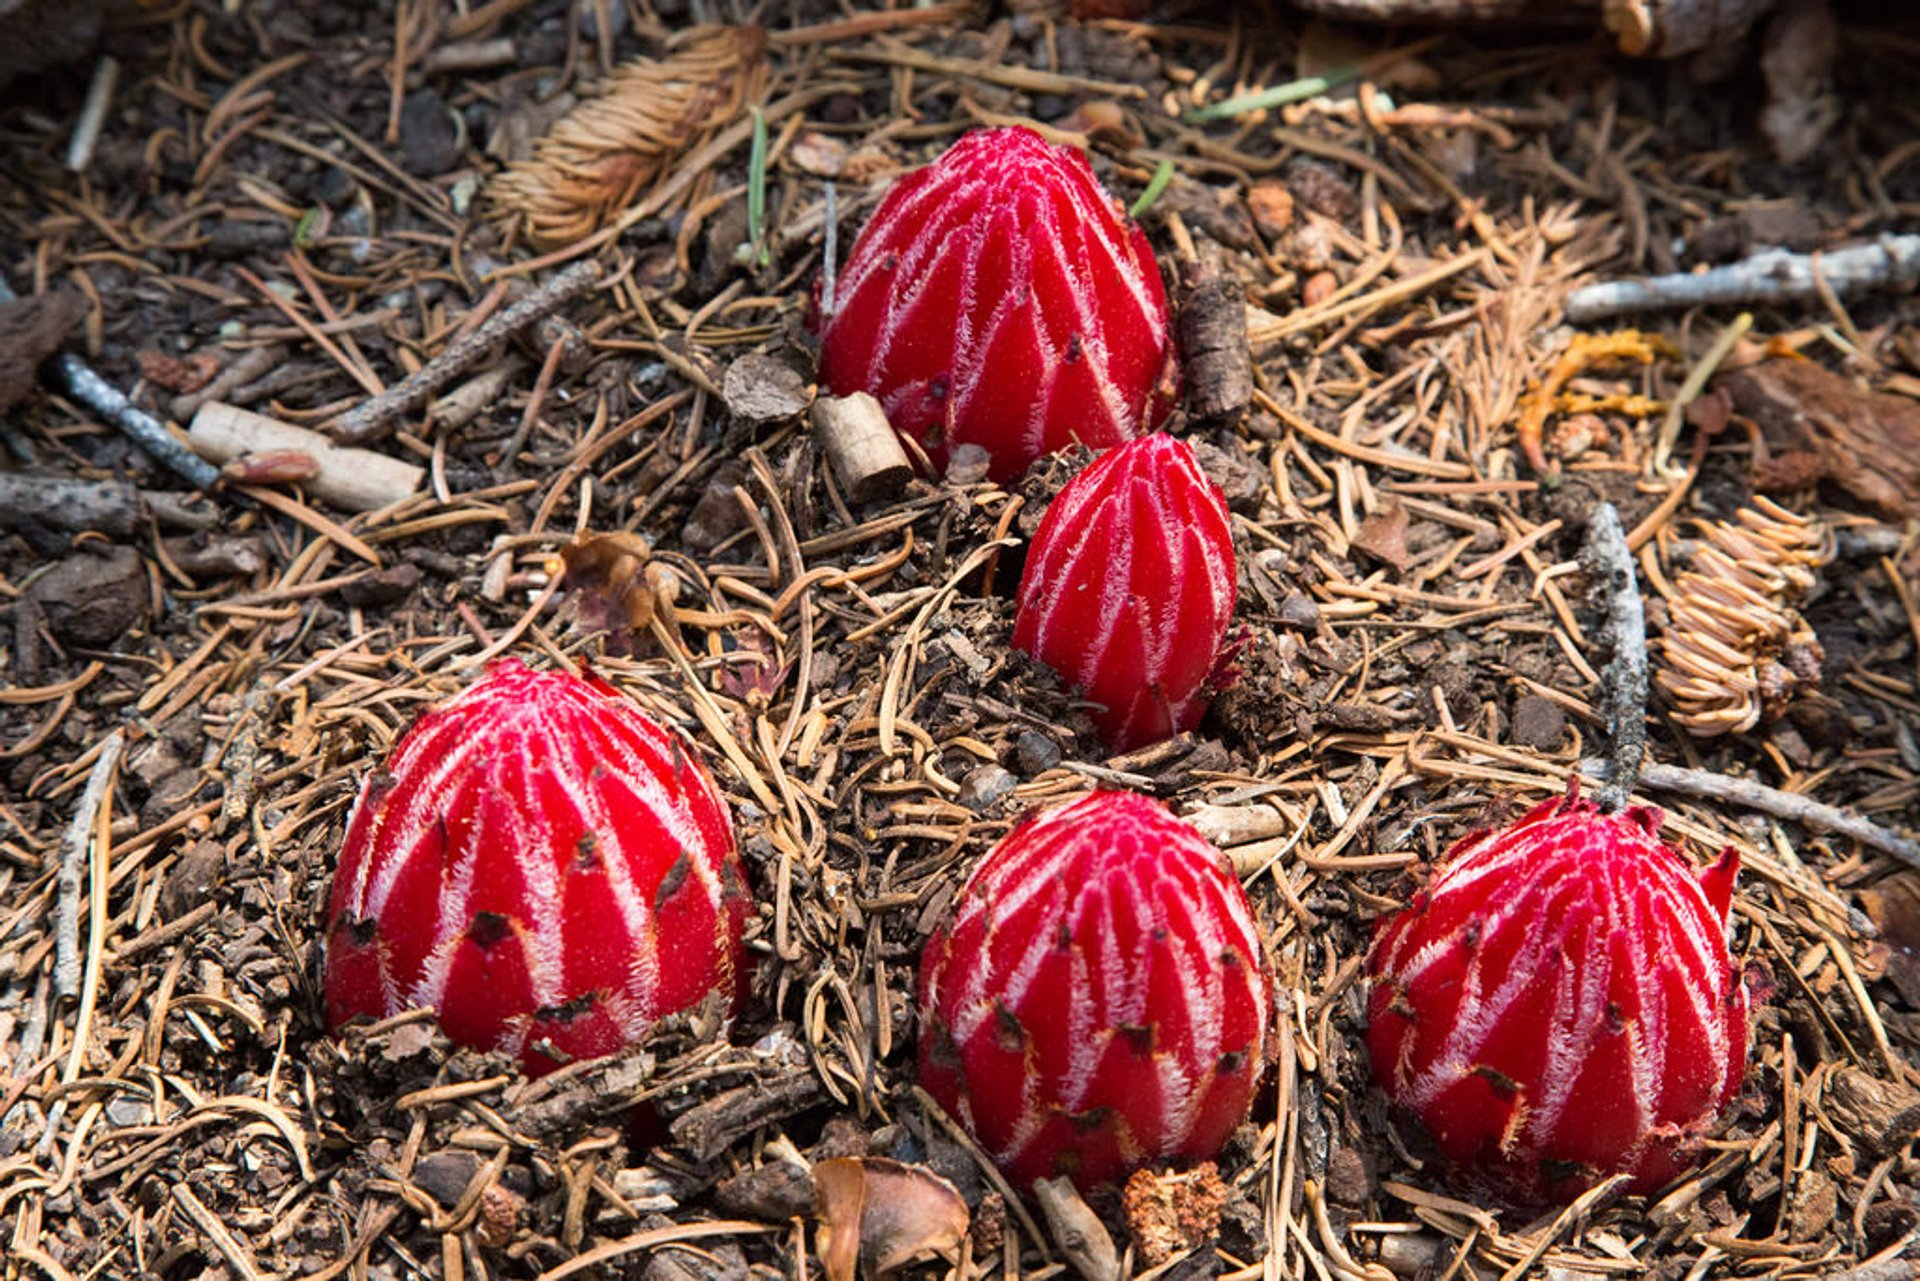 Snow Plant in Yosemite 2019 - Best Time